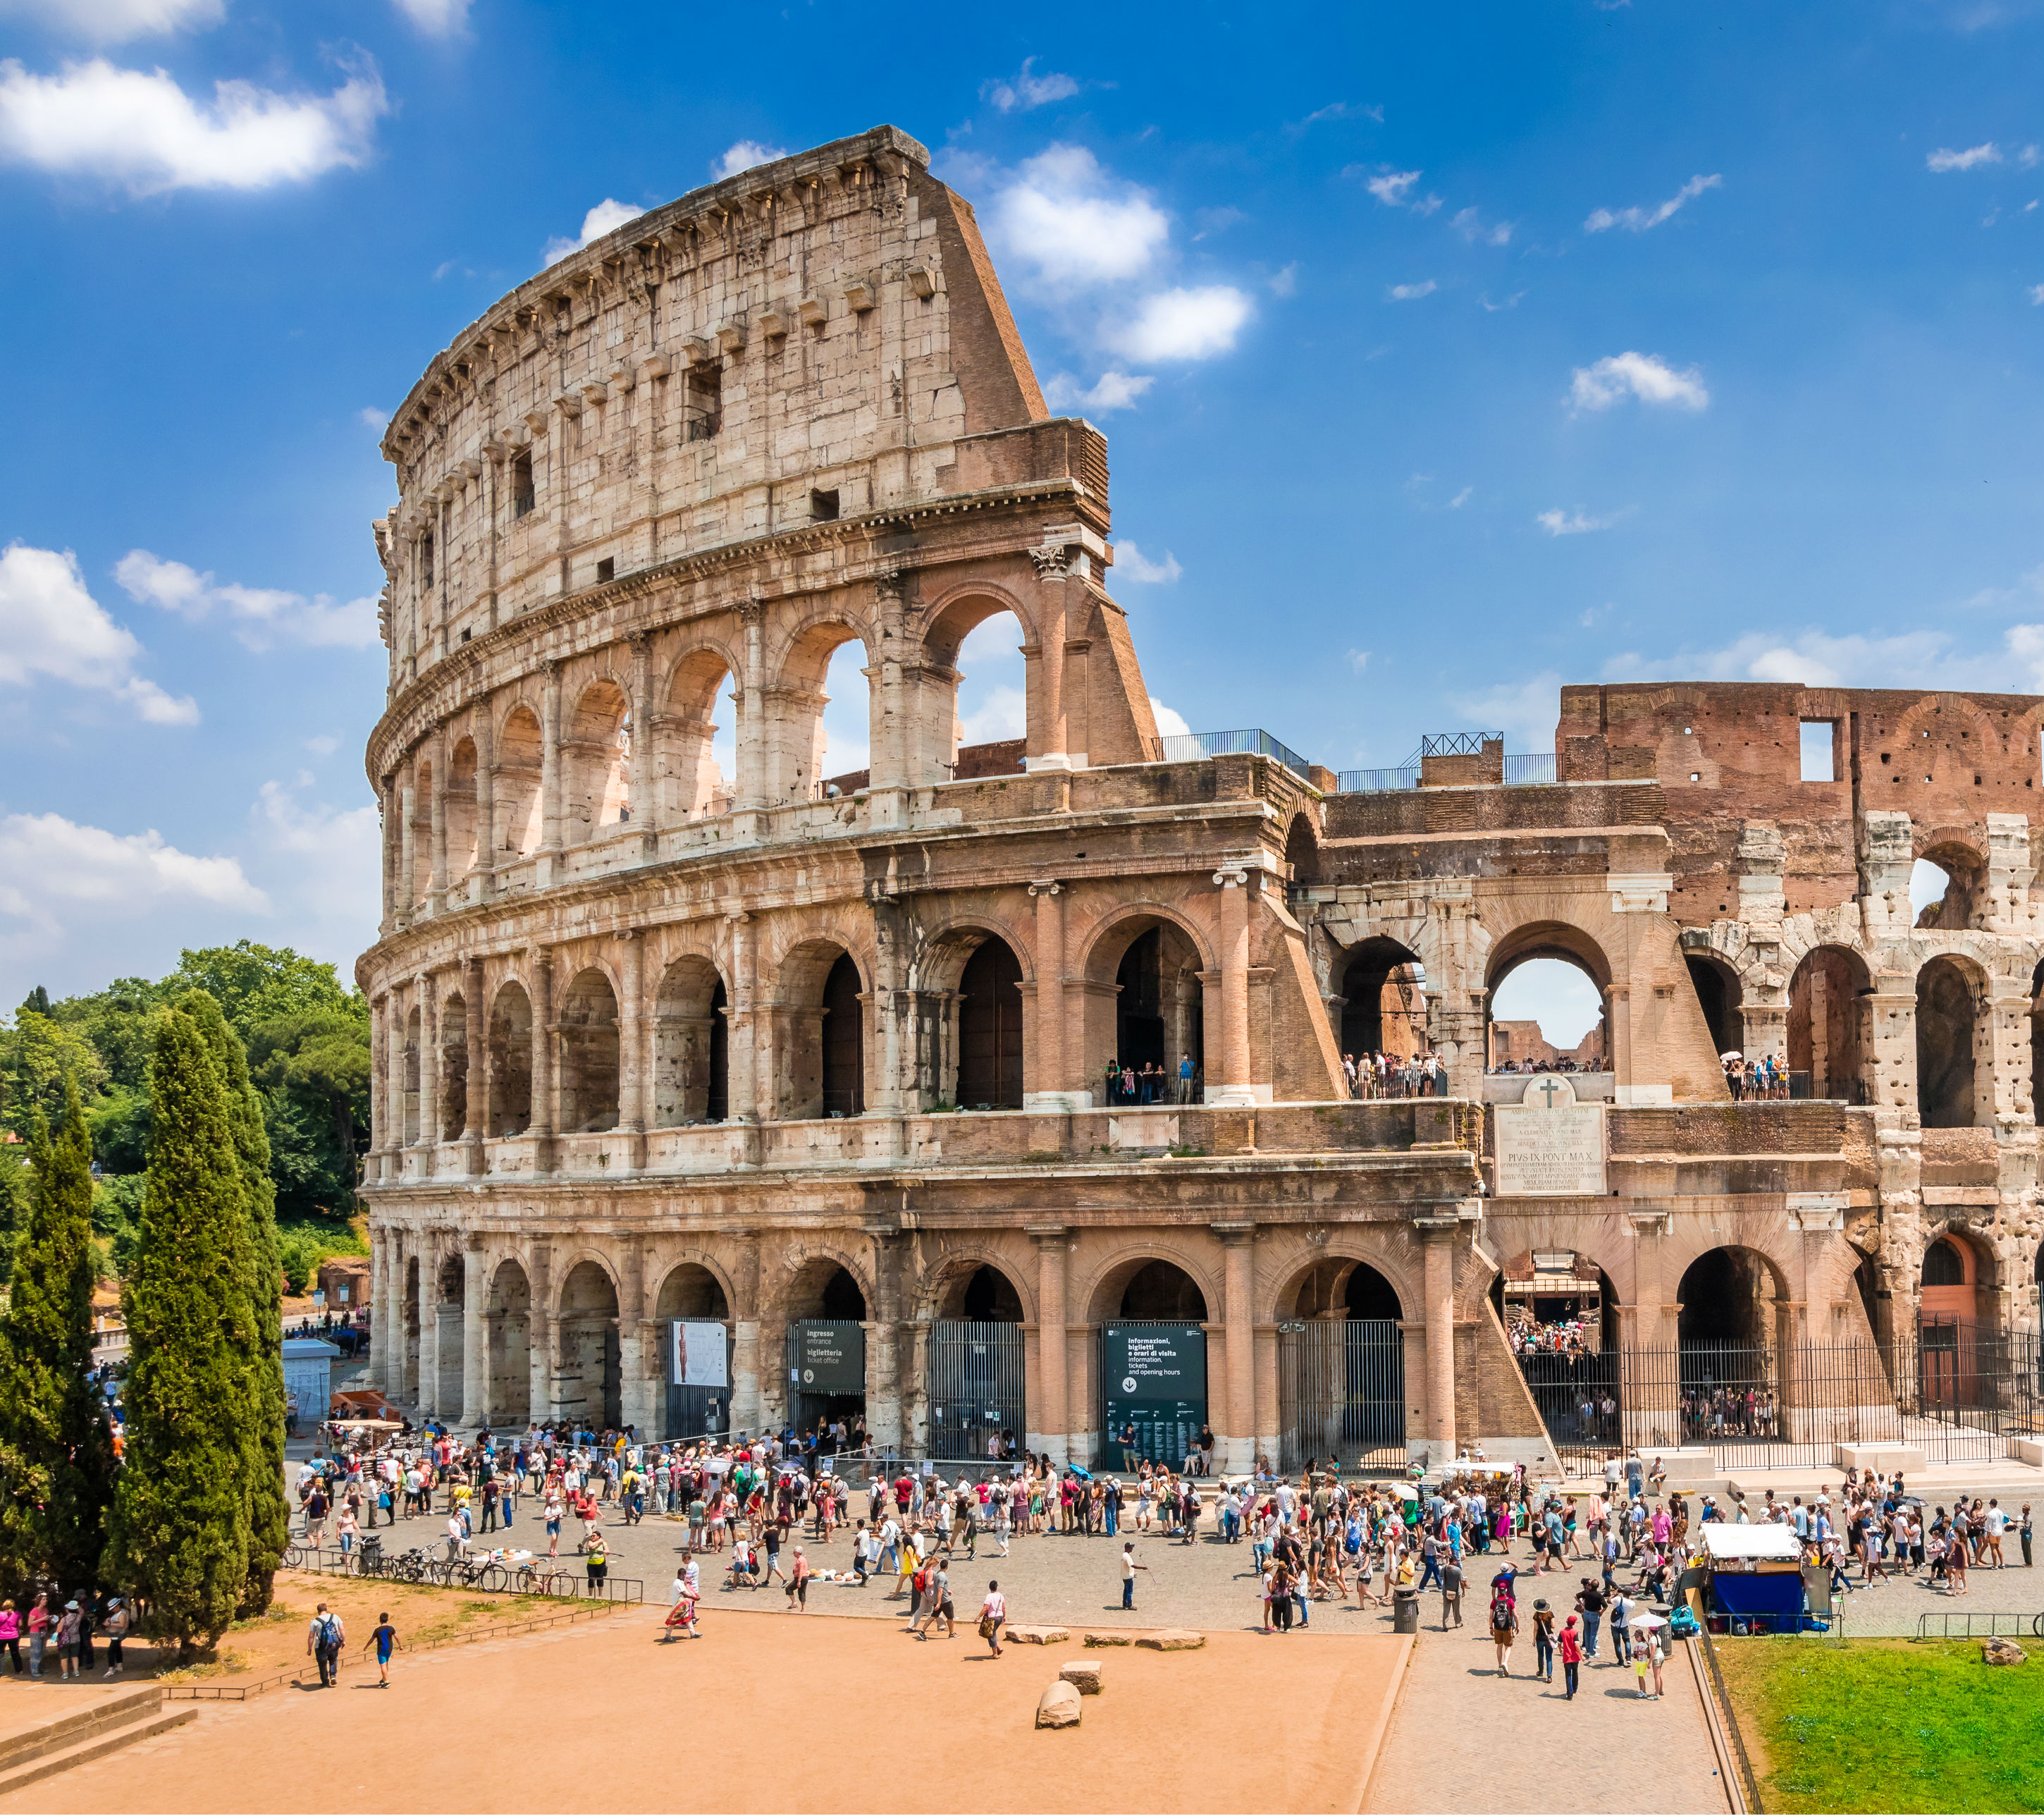 Tickets for Colosseum + Vatican Museums: Skip The Line + Hop-on Hop-off Bus 48H